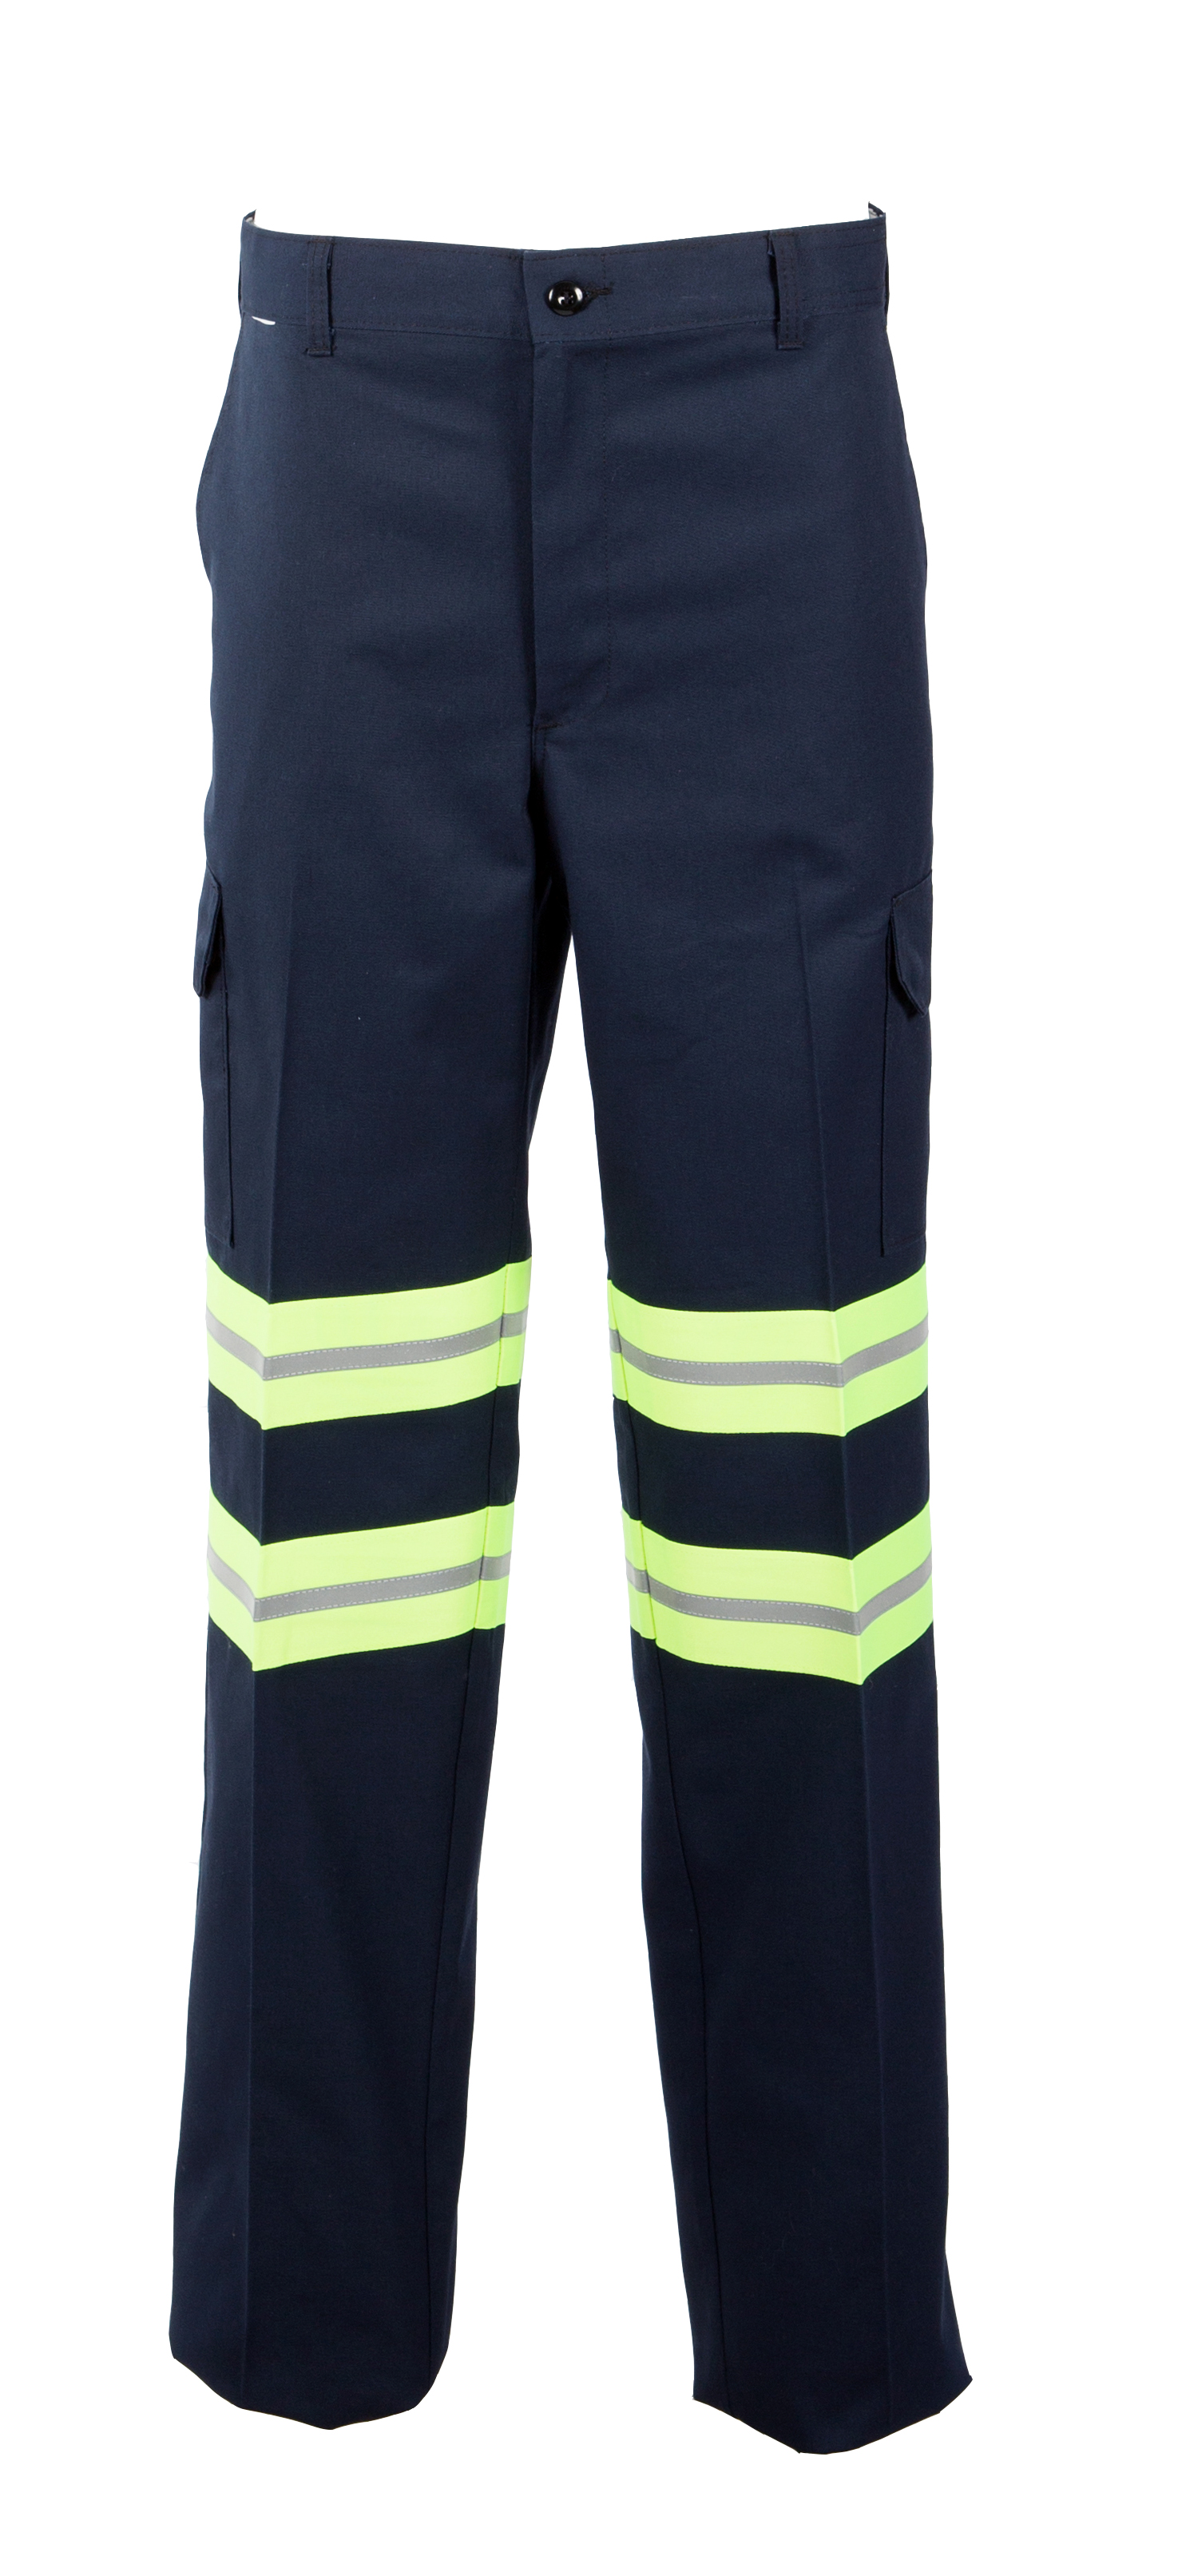 65/35 Enhanced Visibility Men's Comfort Fit Industrial Work Cargo Pant-Pinnacle WorX